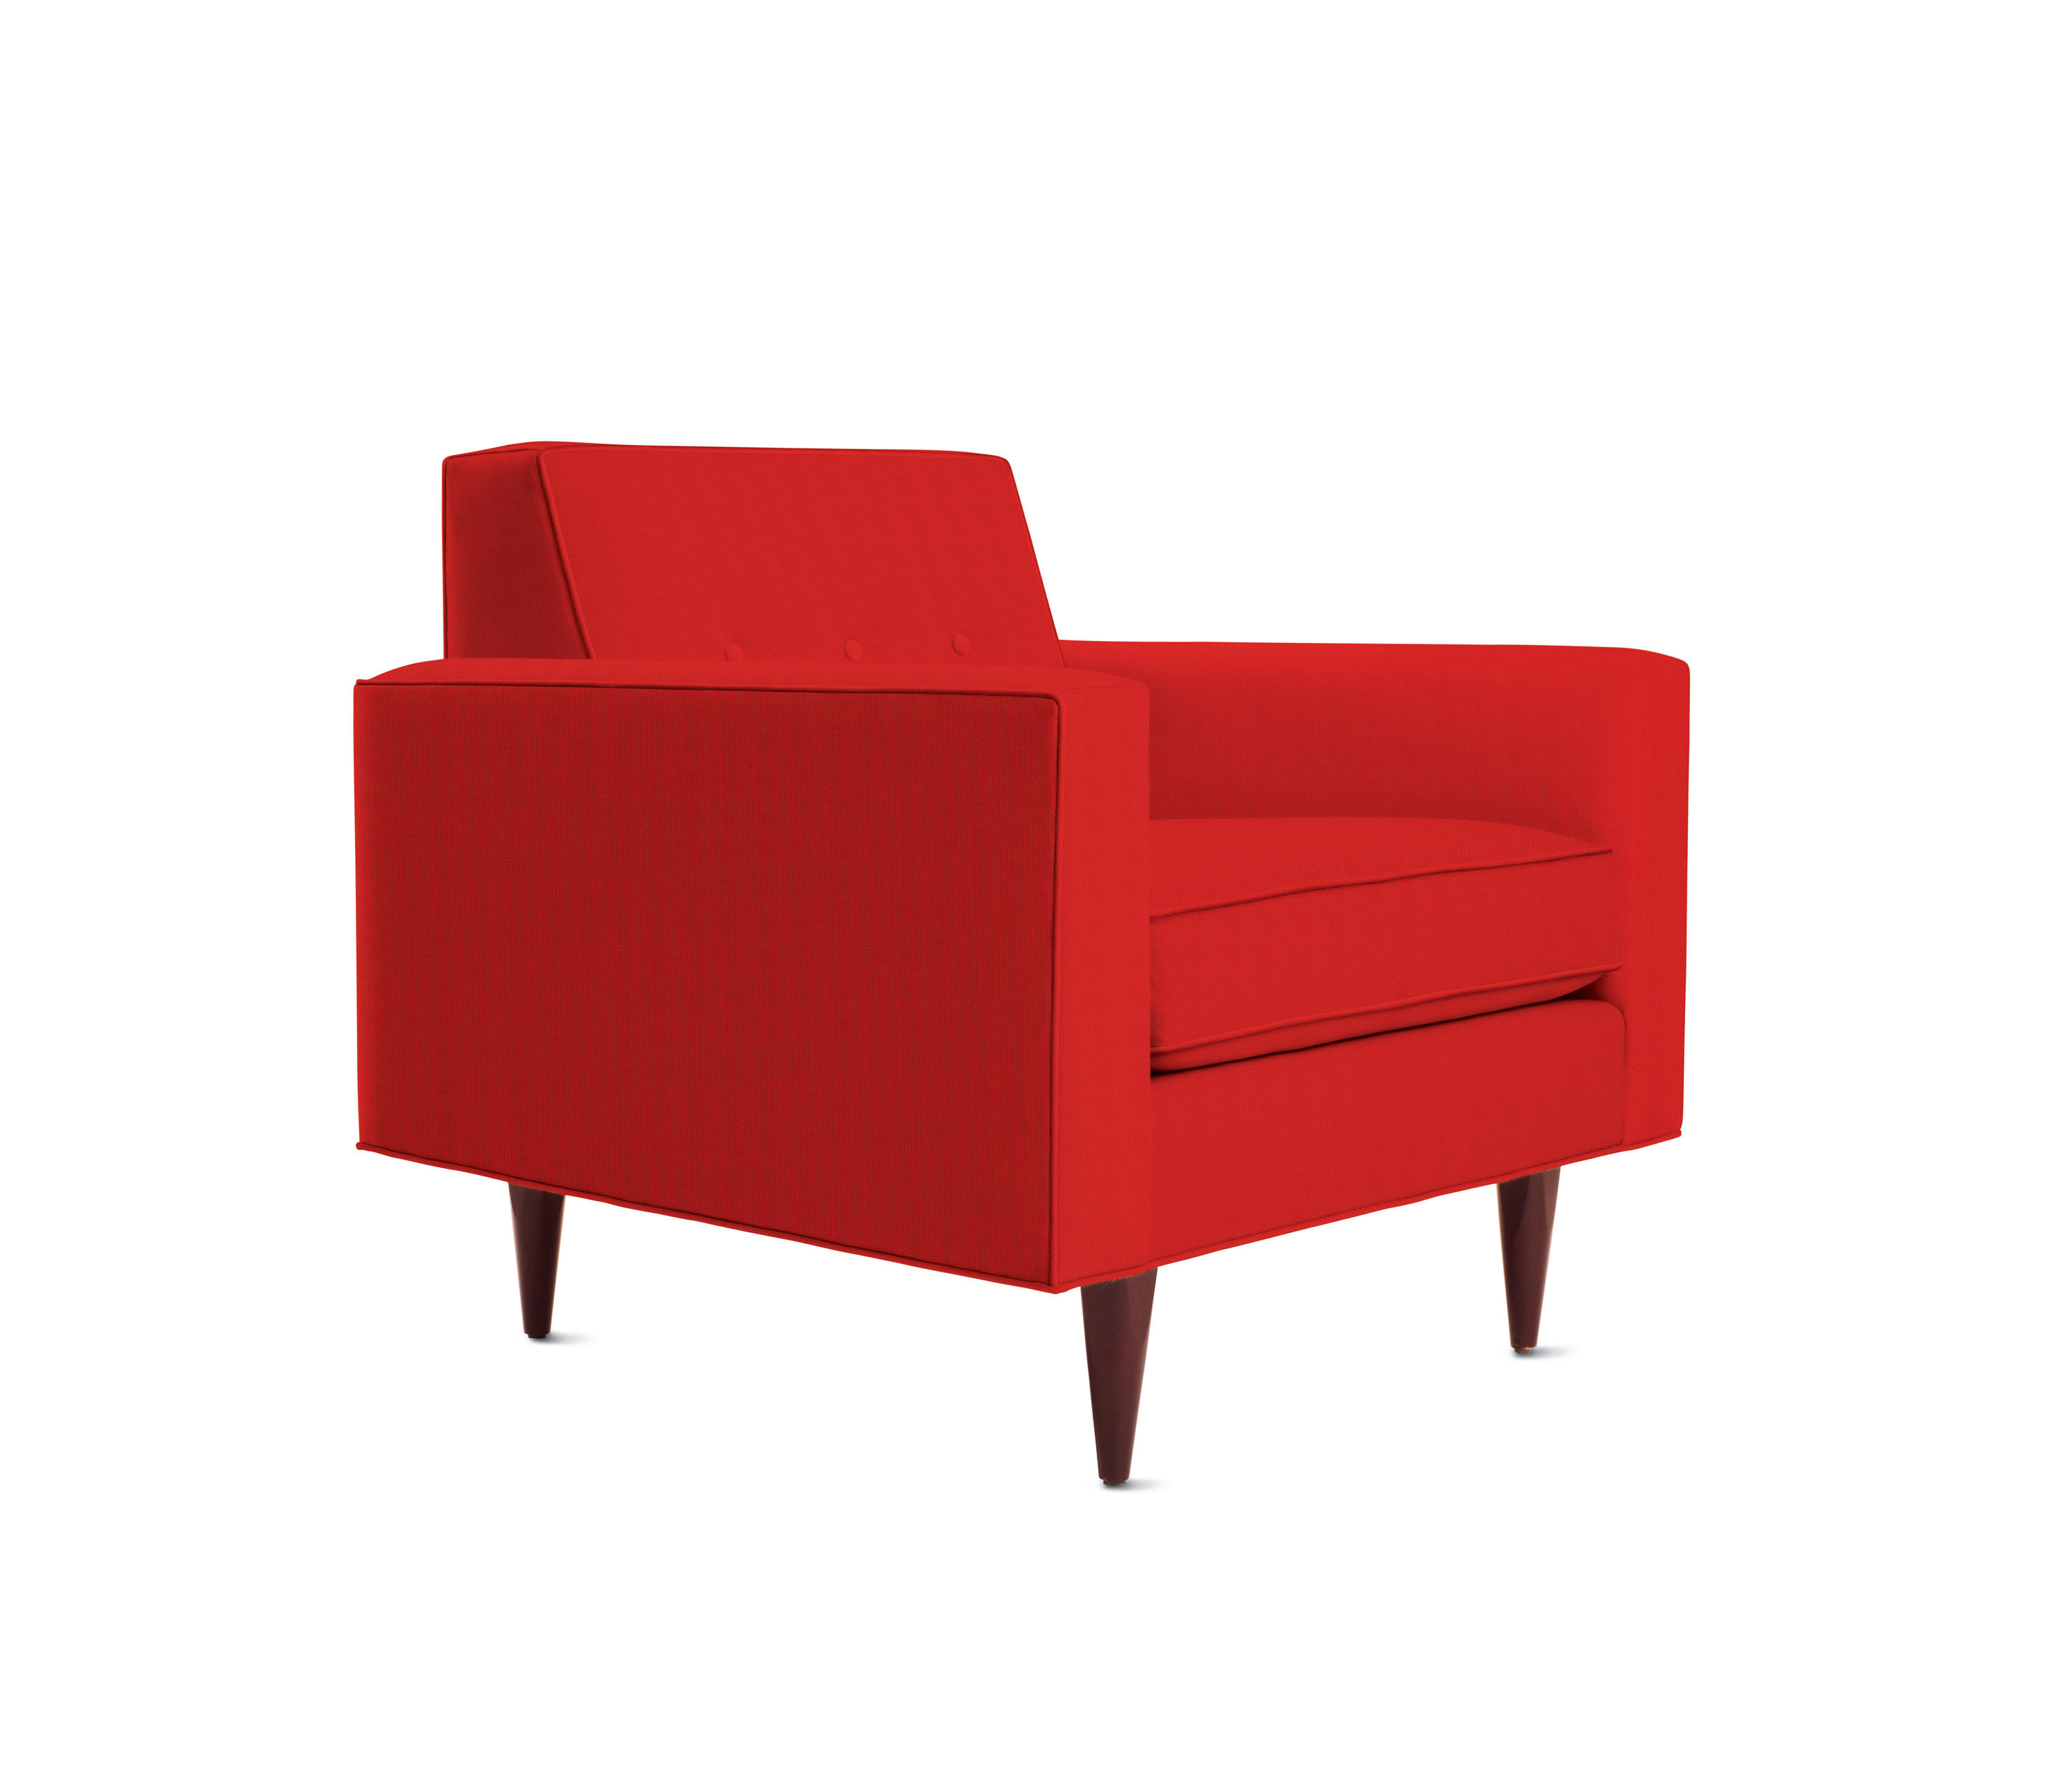 Bantam Armchair In Fabric Armchairs From Design Within Reach